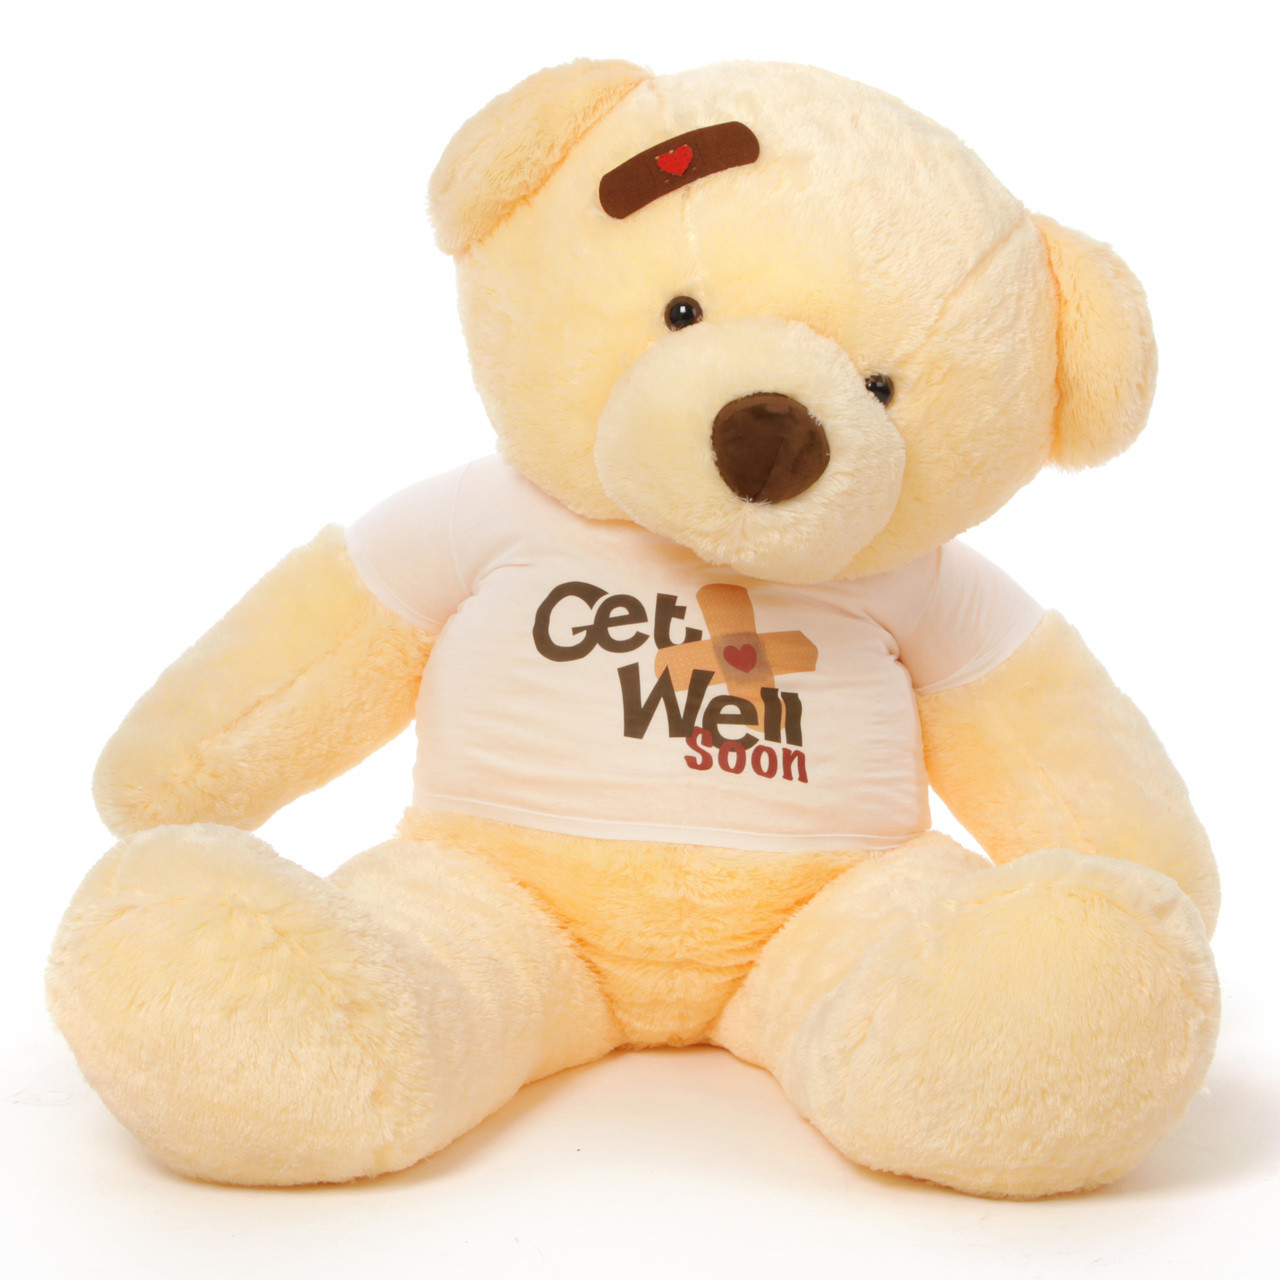 5ft huge adorable get well soon teddy bears in 3 colors with custom